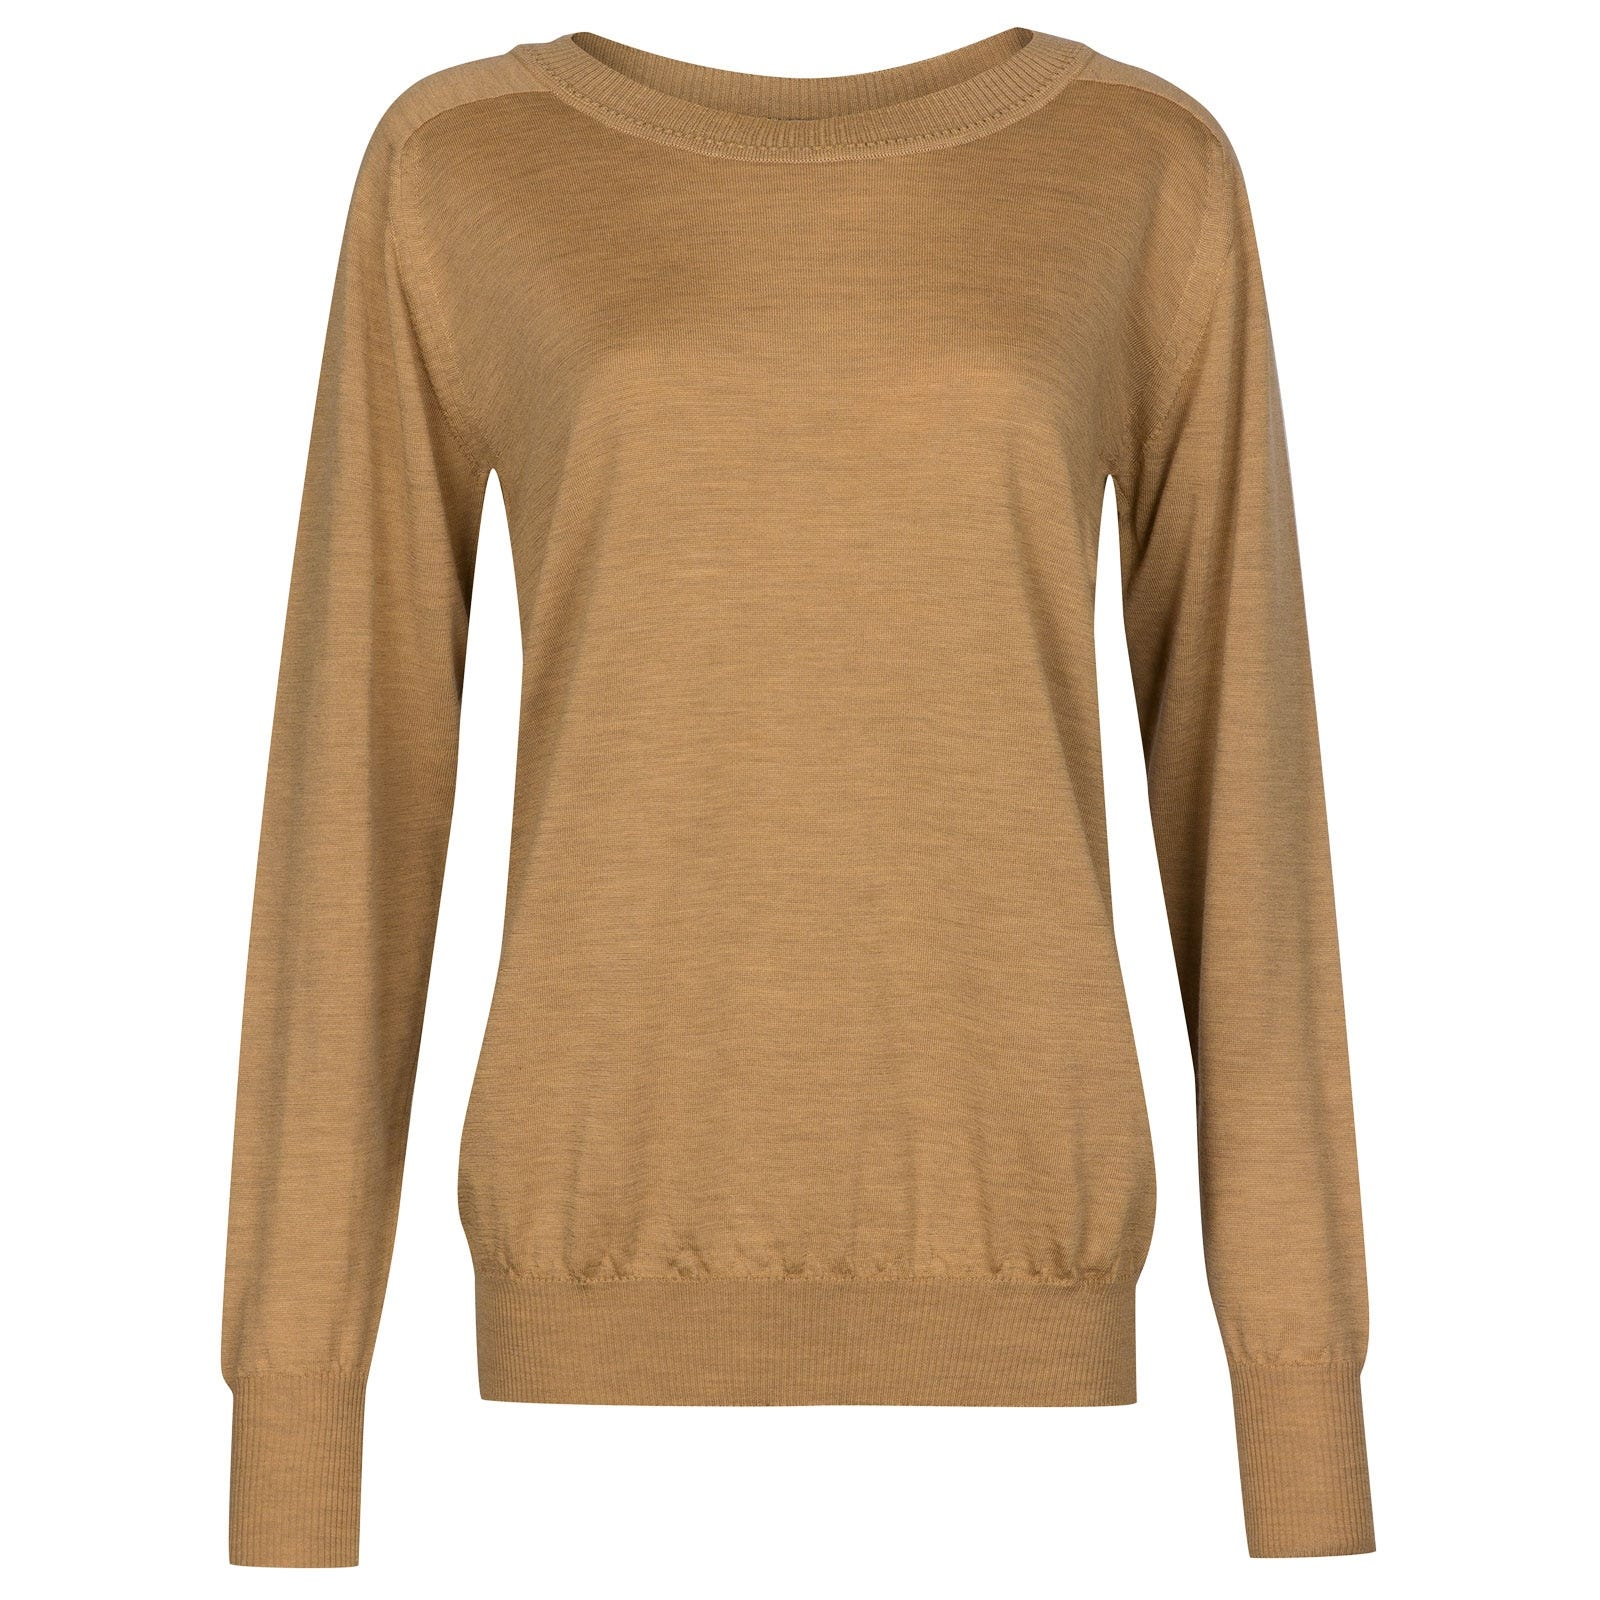 John Smedley Atwood in Dark camel Sweater-LGE